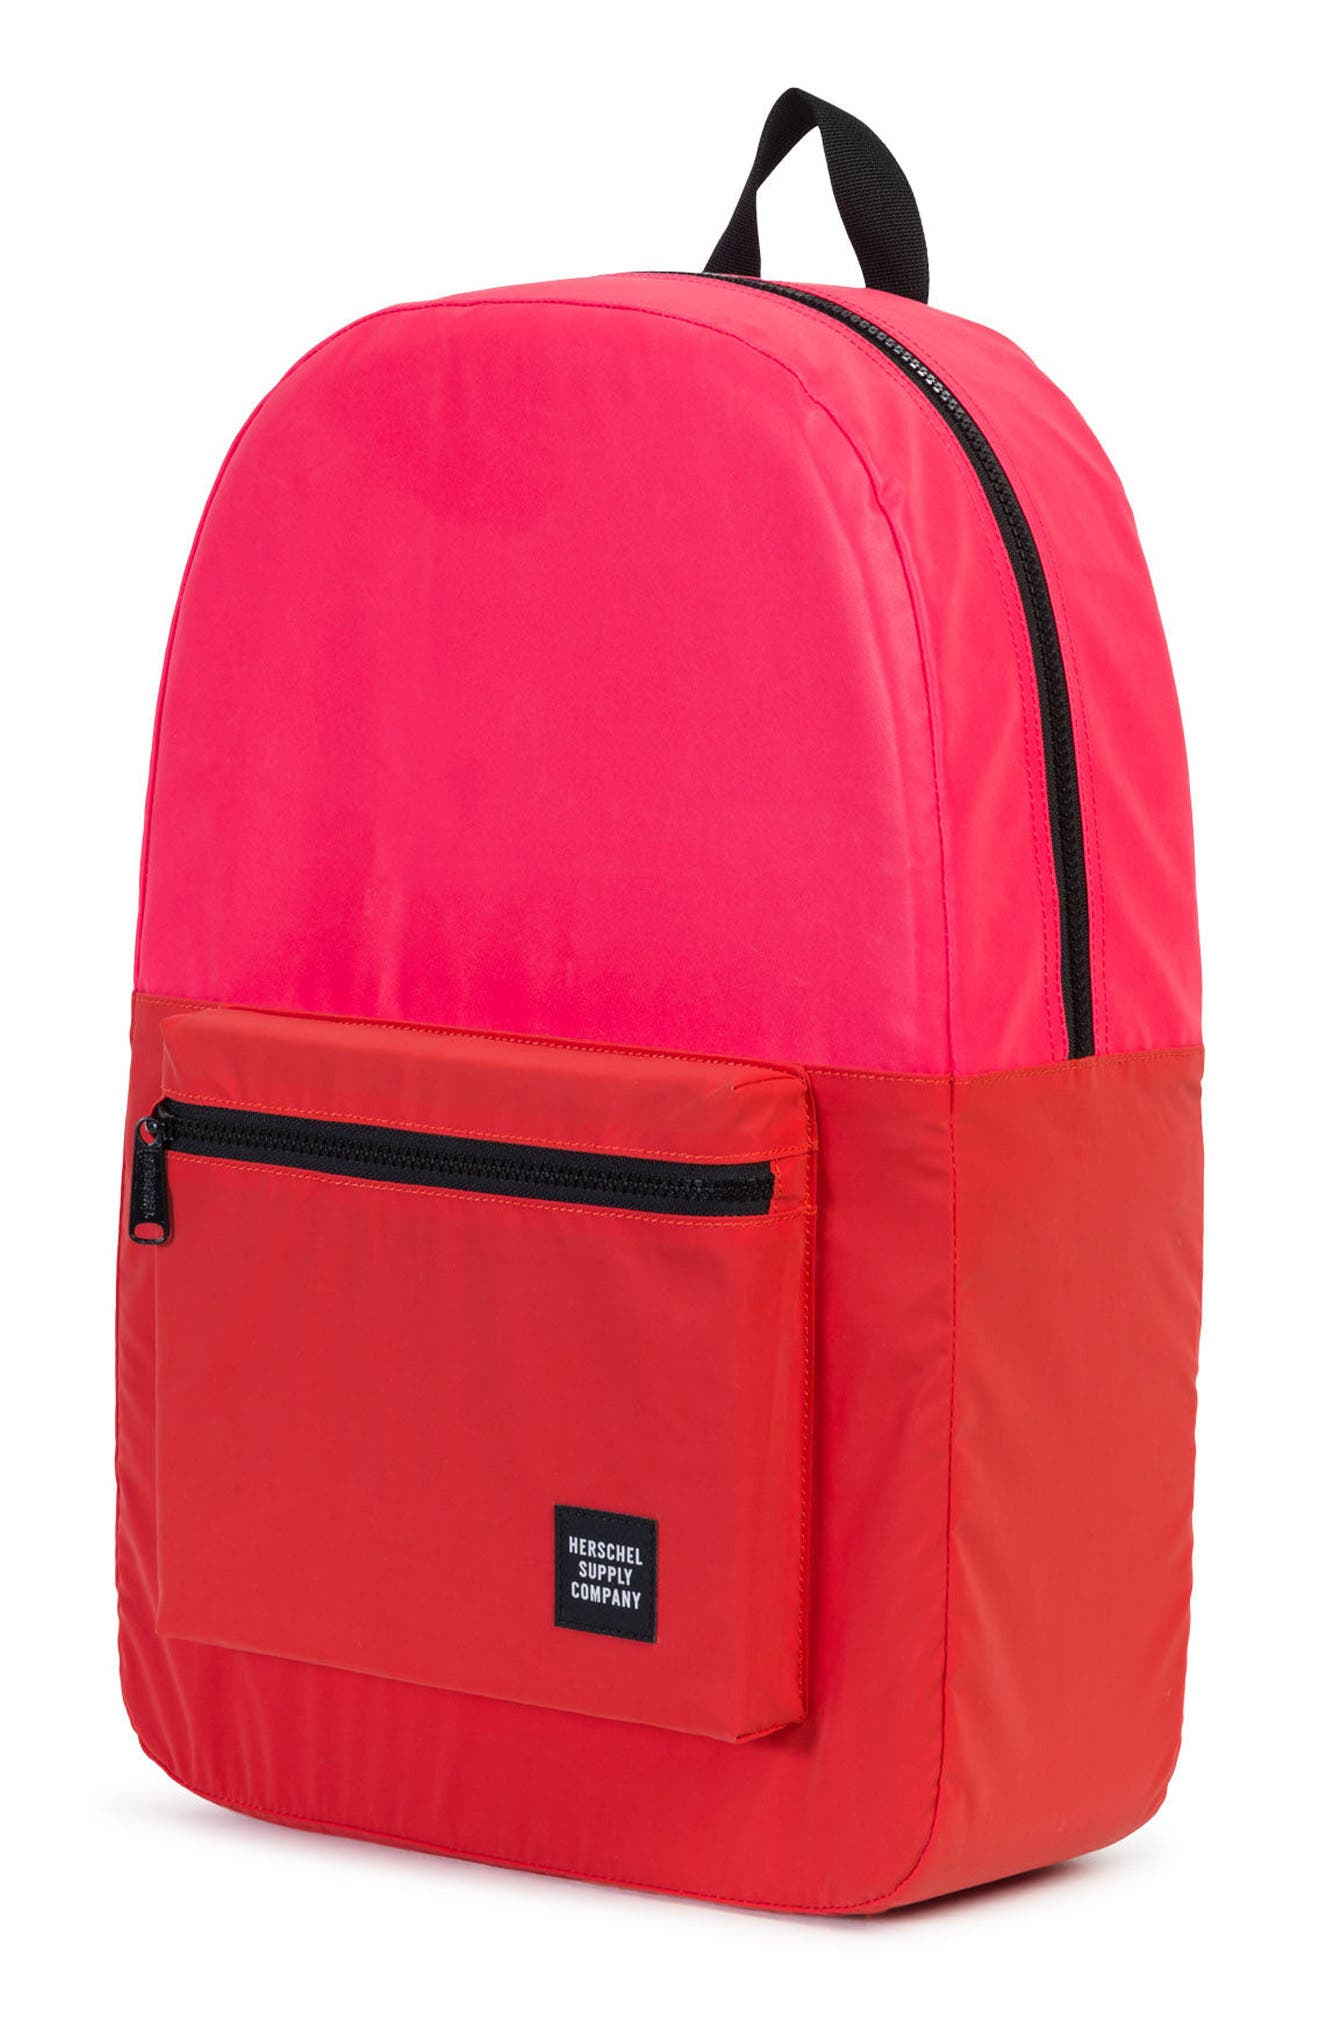 Heritage Reflective Backpack,                             Alternate thumbnail 2, color,                             Neon Pink Reflective/ Red